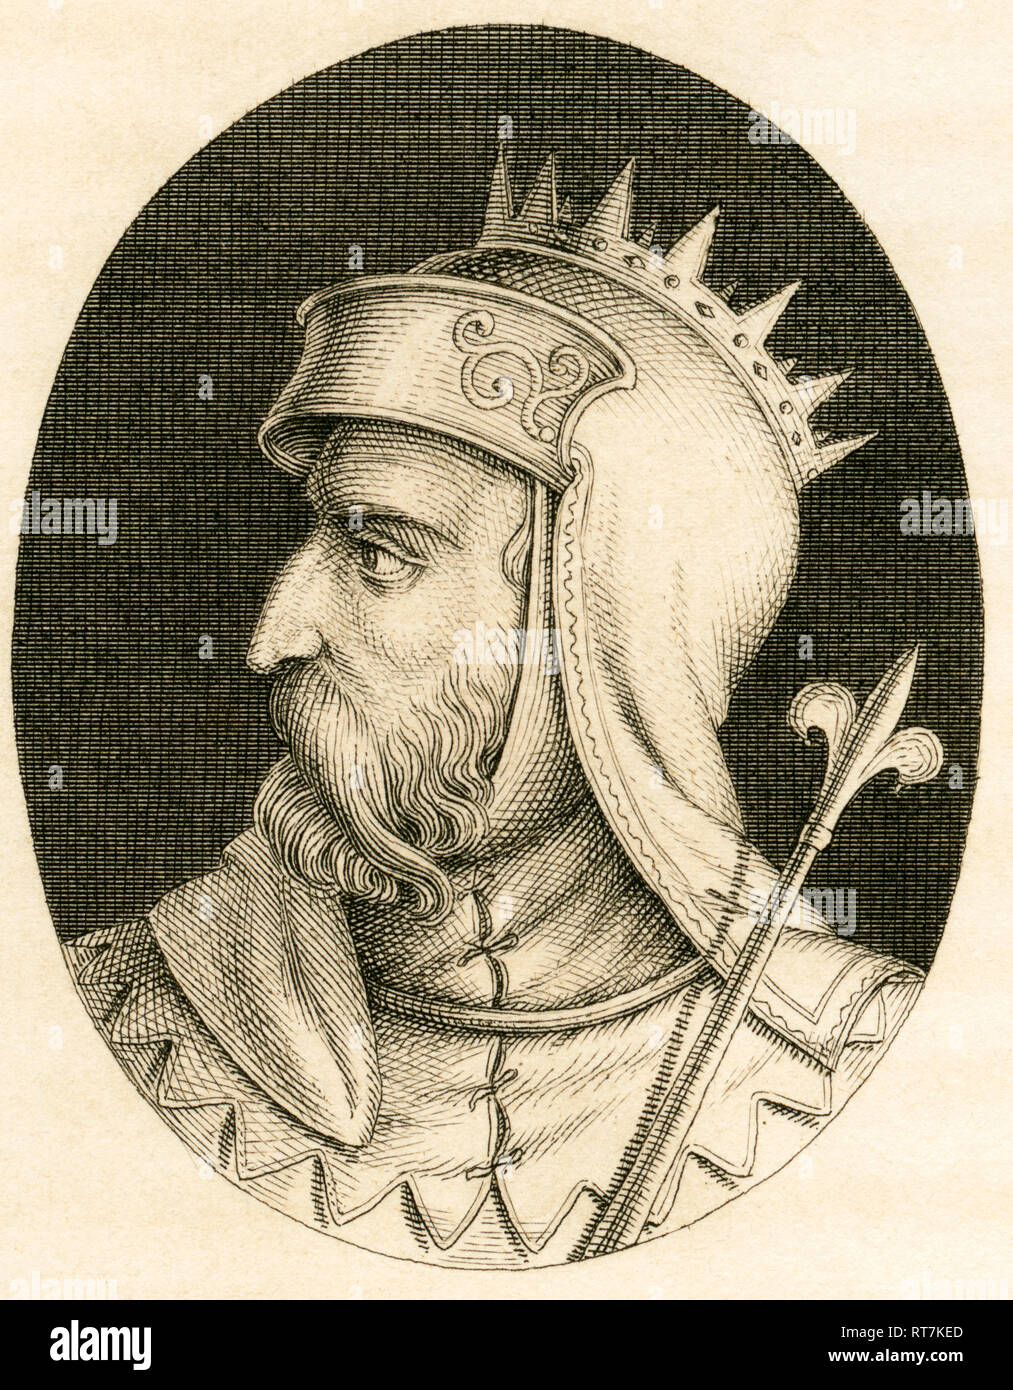 Pepin, Carolingian dynasty, copperplate engraving from Stahlheim, about 1840th., Artist's Copyright has not to be cleared - Stock Image